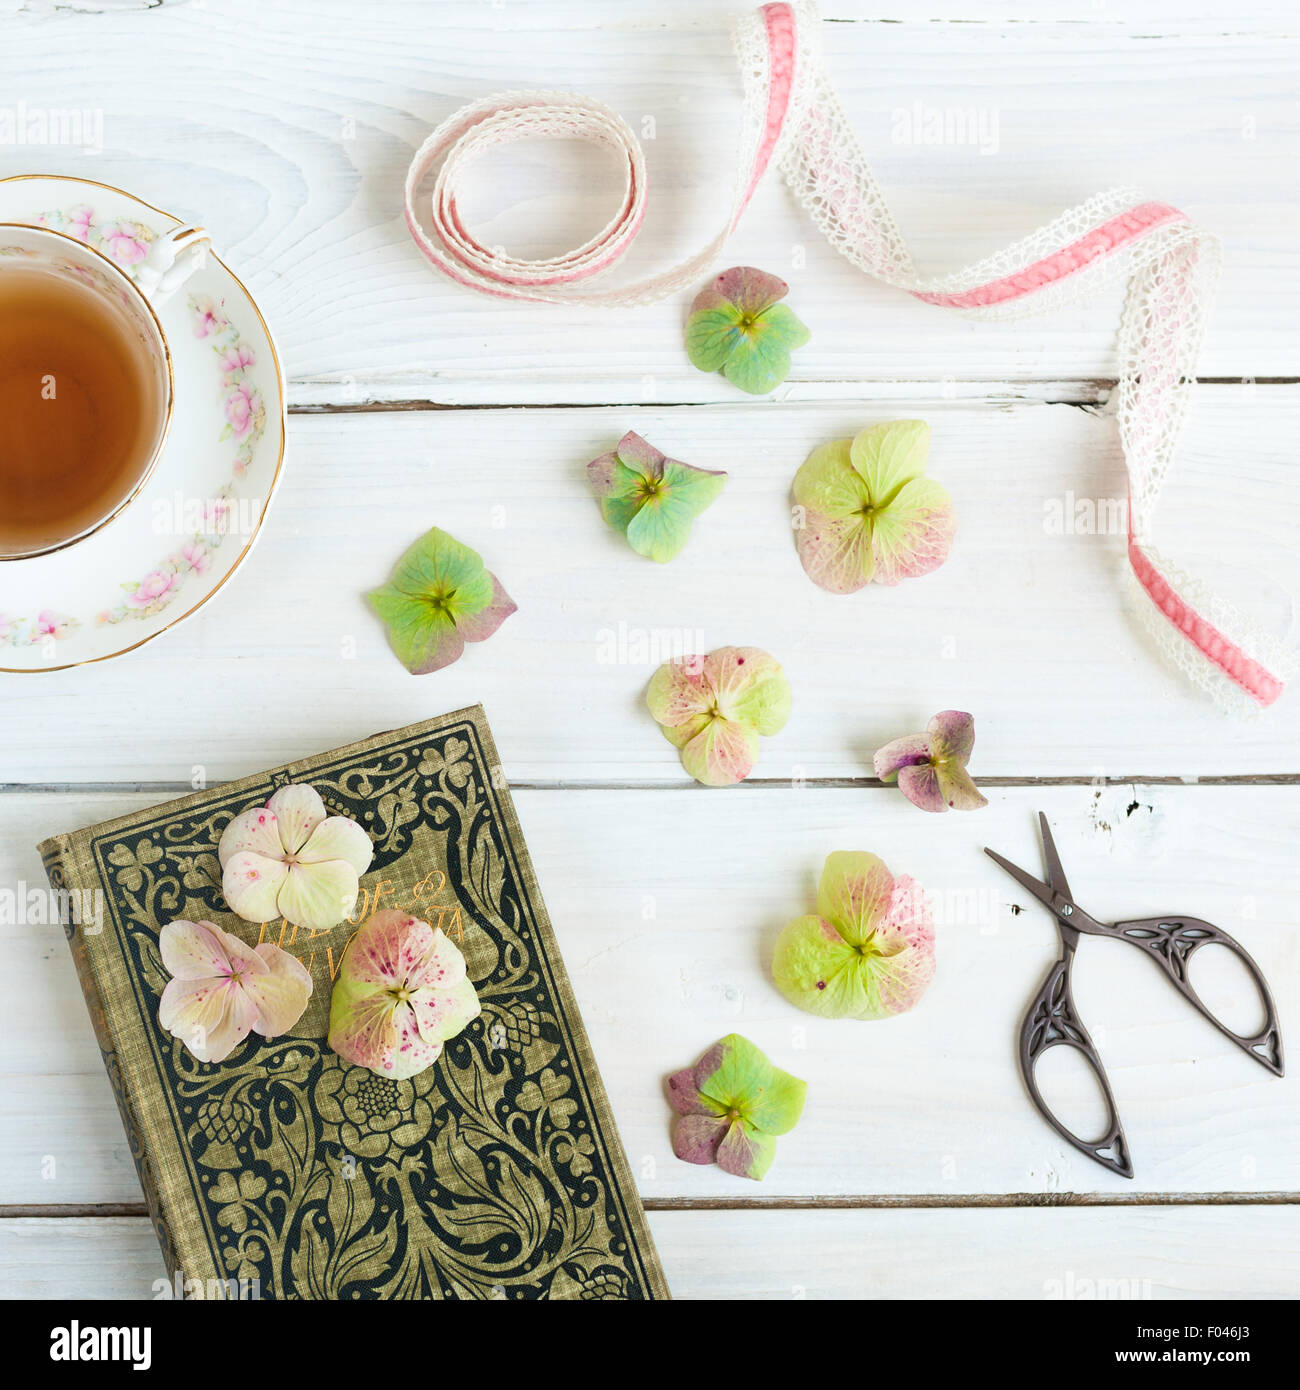 still life with teacup, old book, hydrangea flowers, ribbon and embroidery scissors - Stock Image